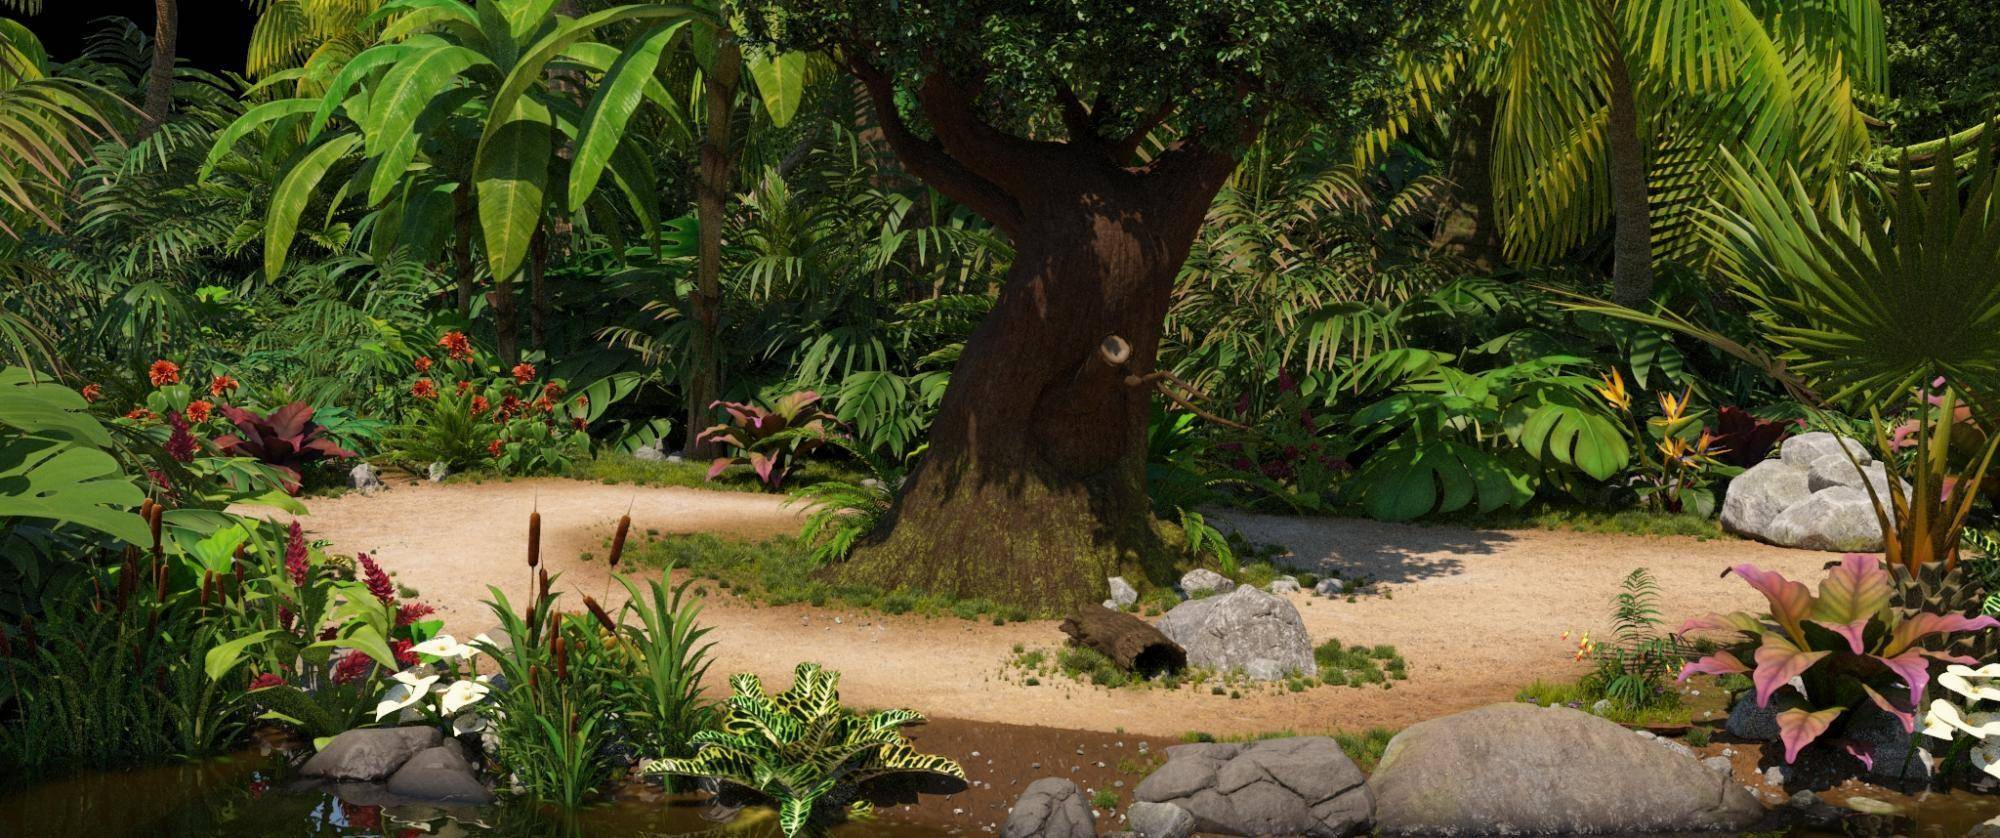 The Jungle Bunch-s5_environement.v04.render.jpg